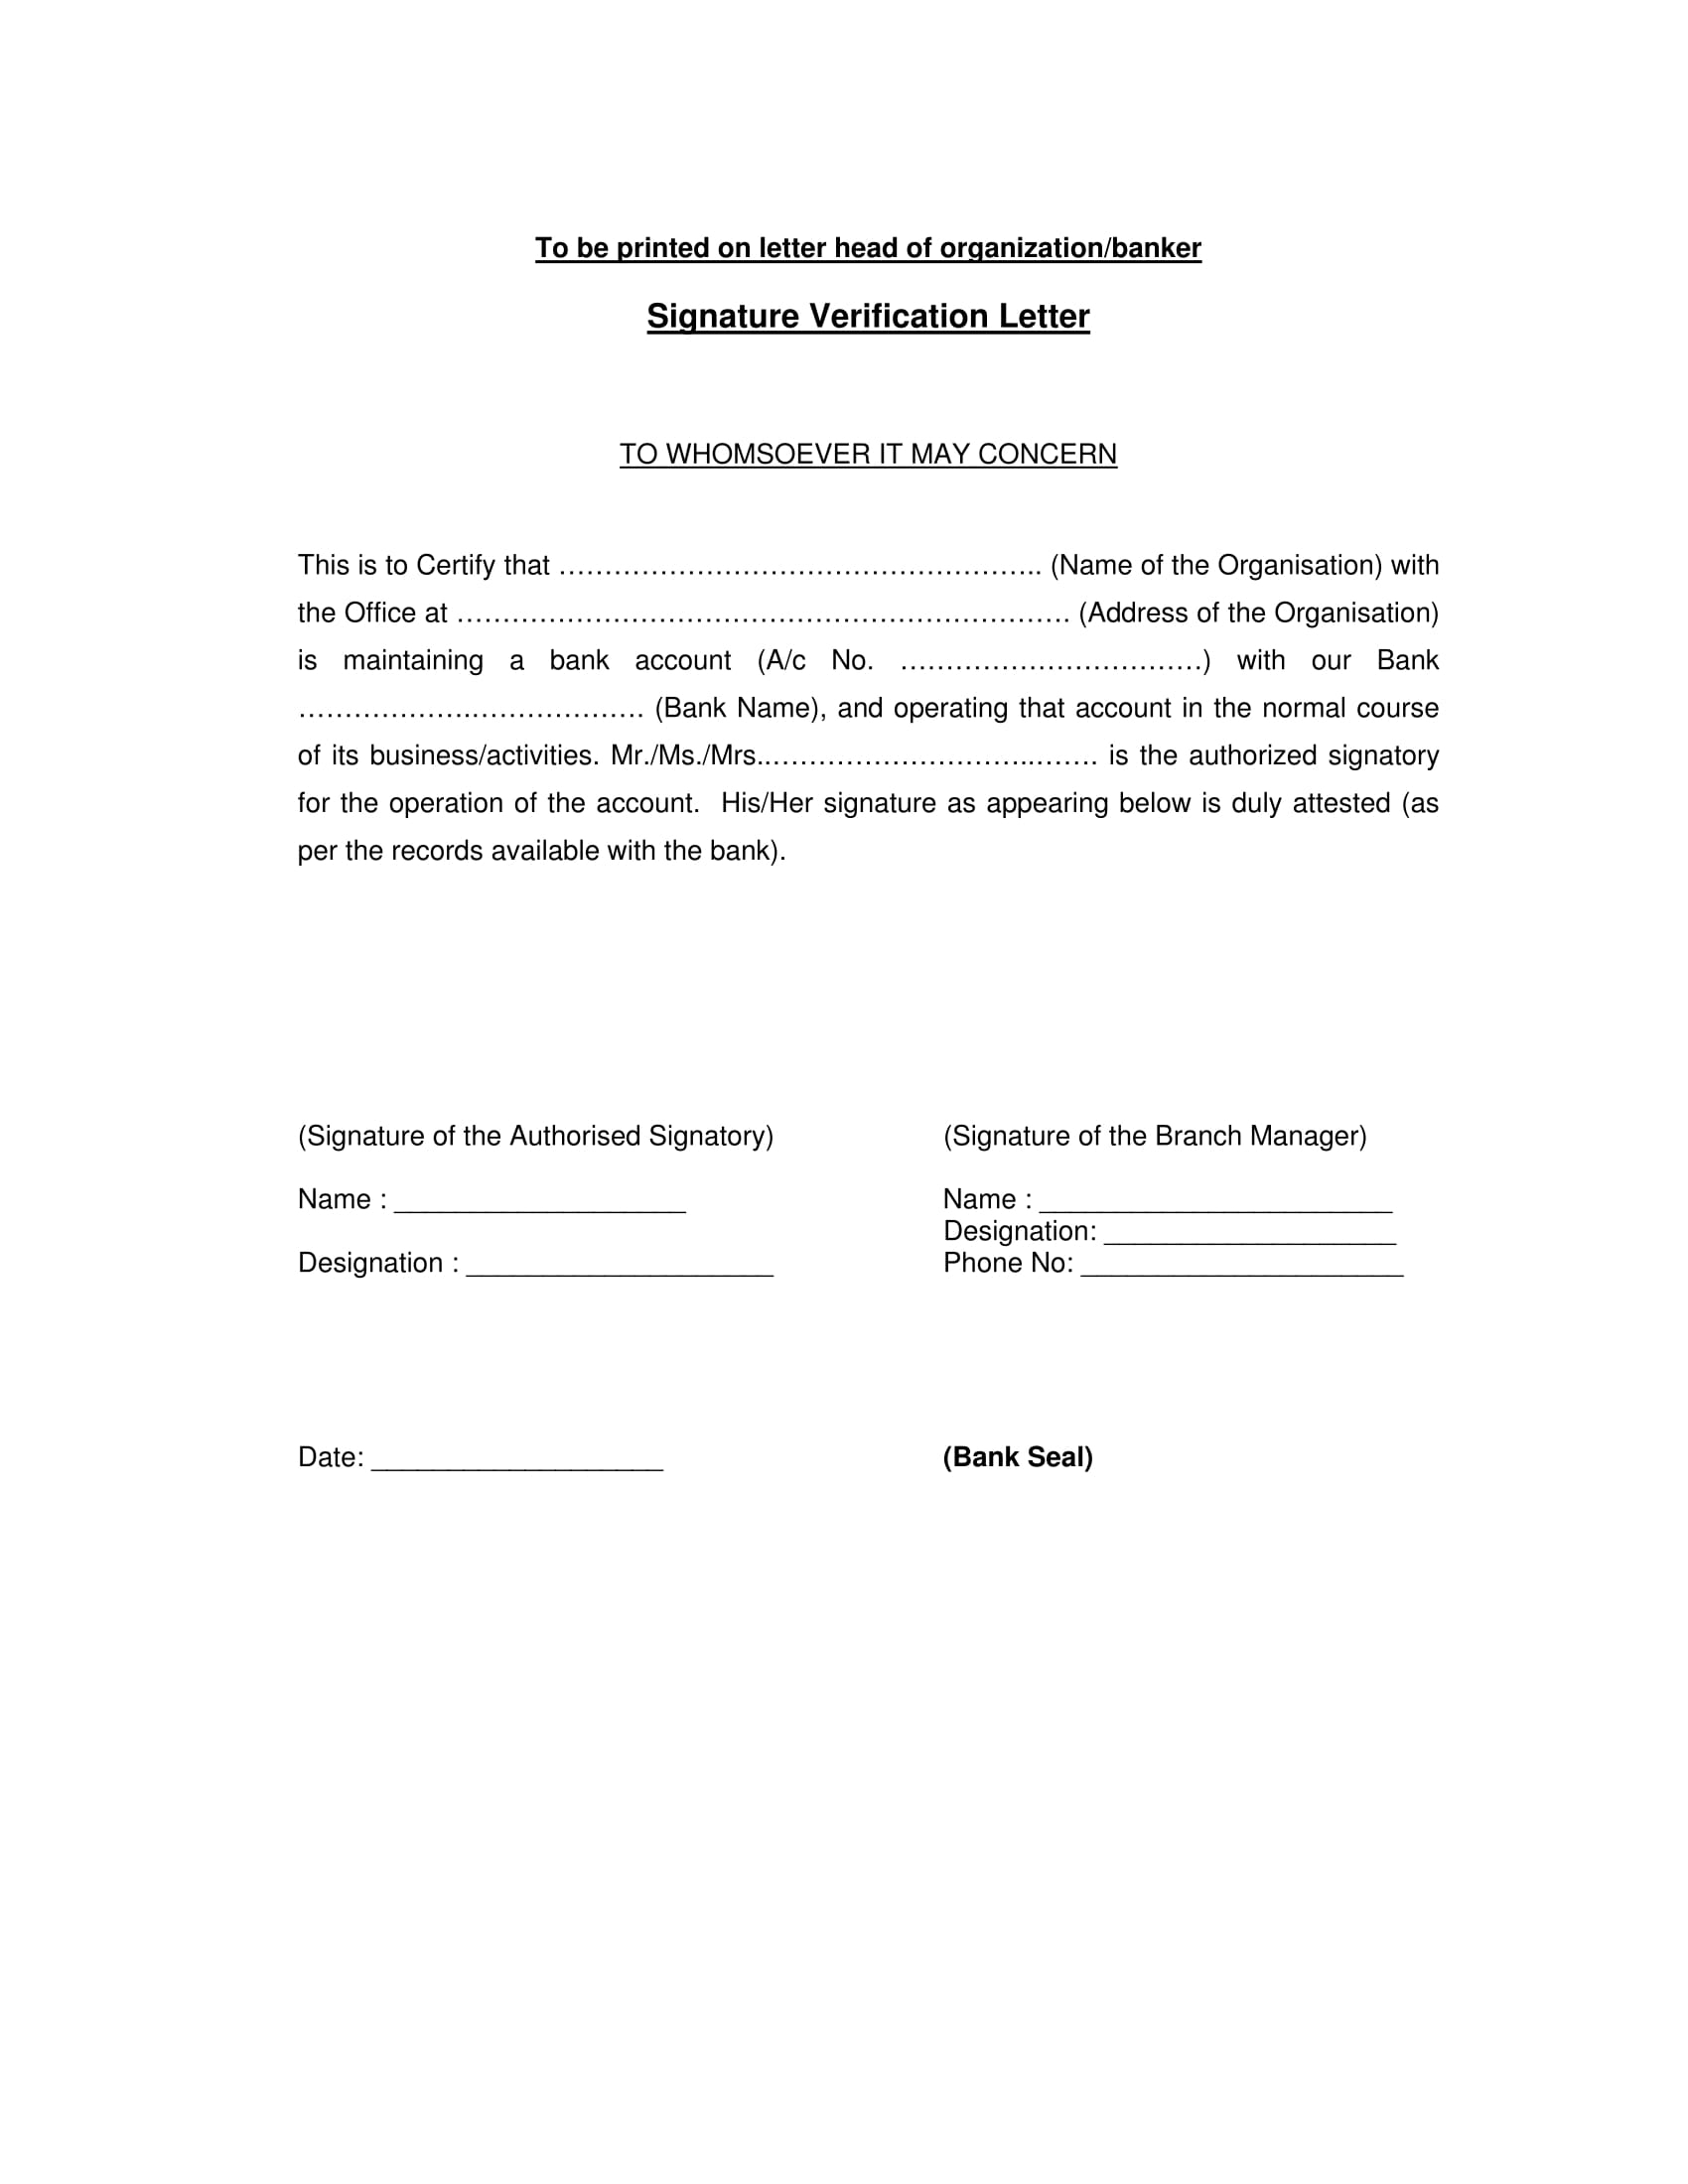 Organization Signature Verification Form 2 Jpg